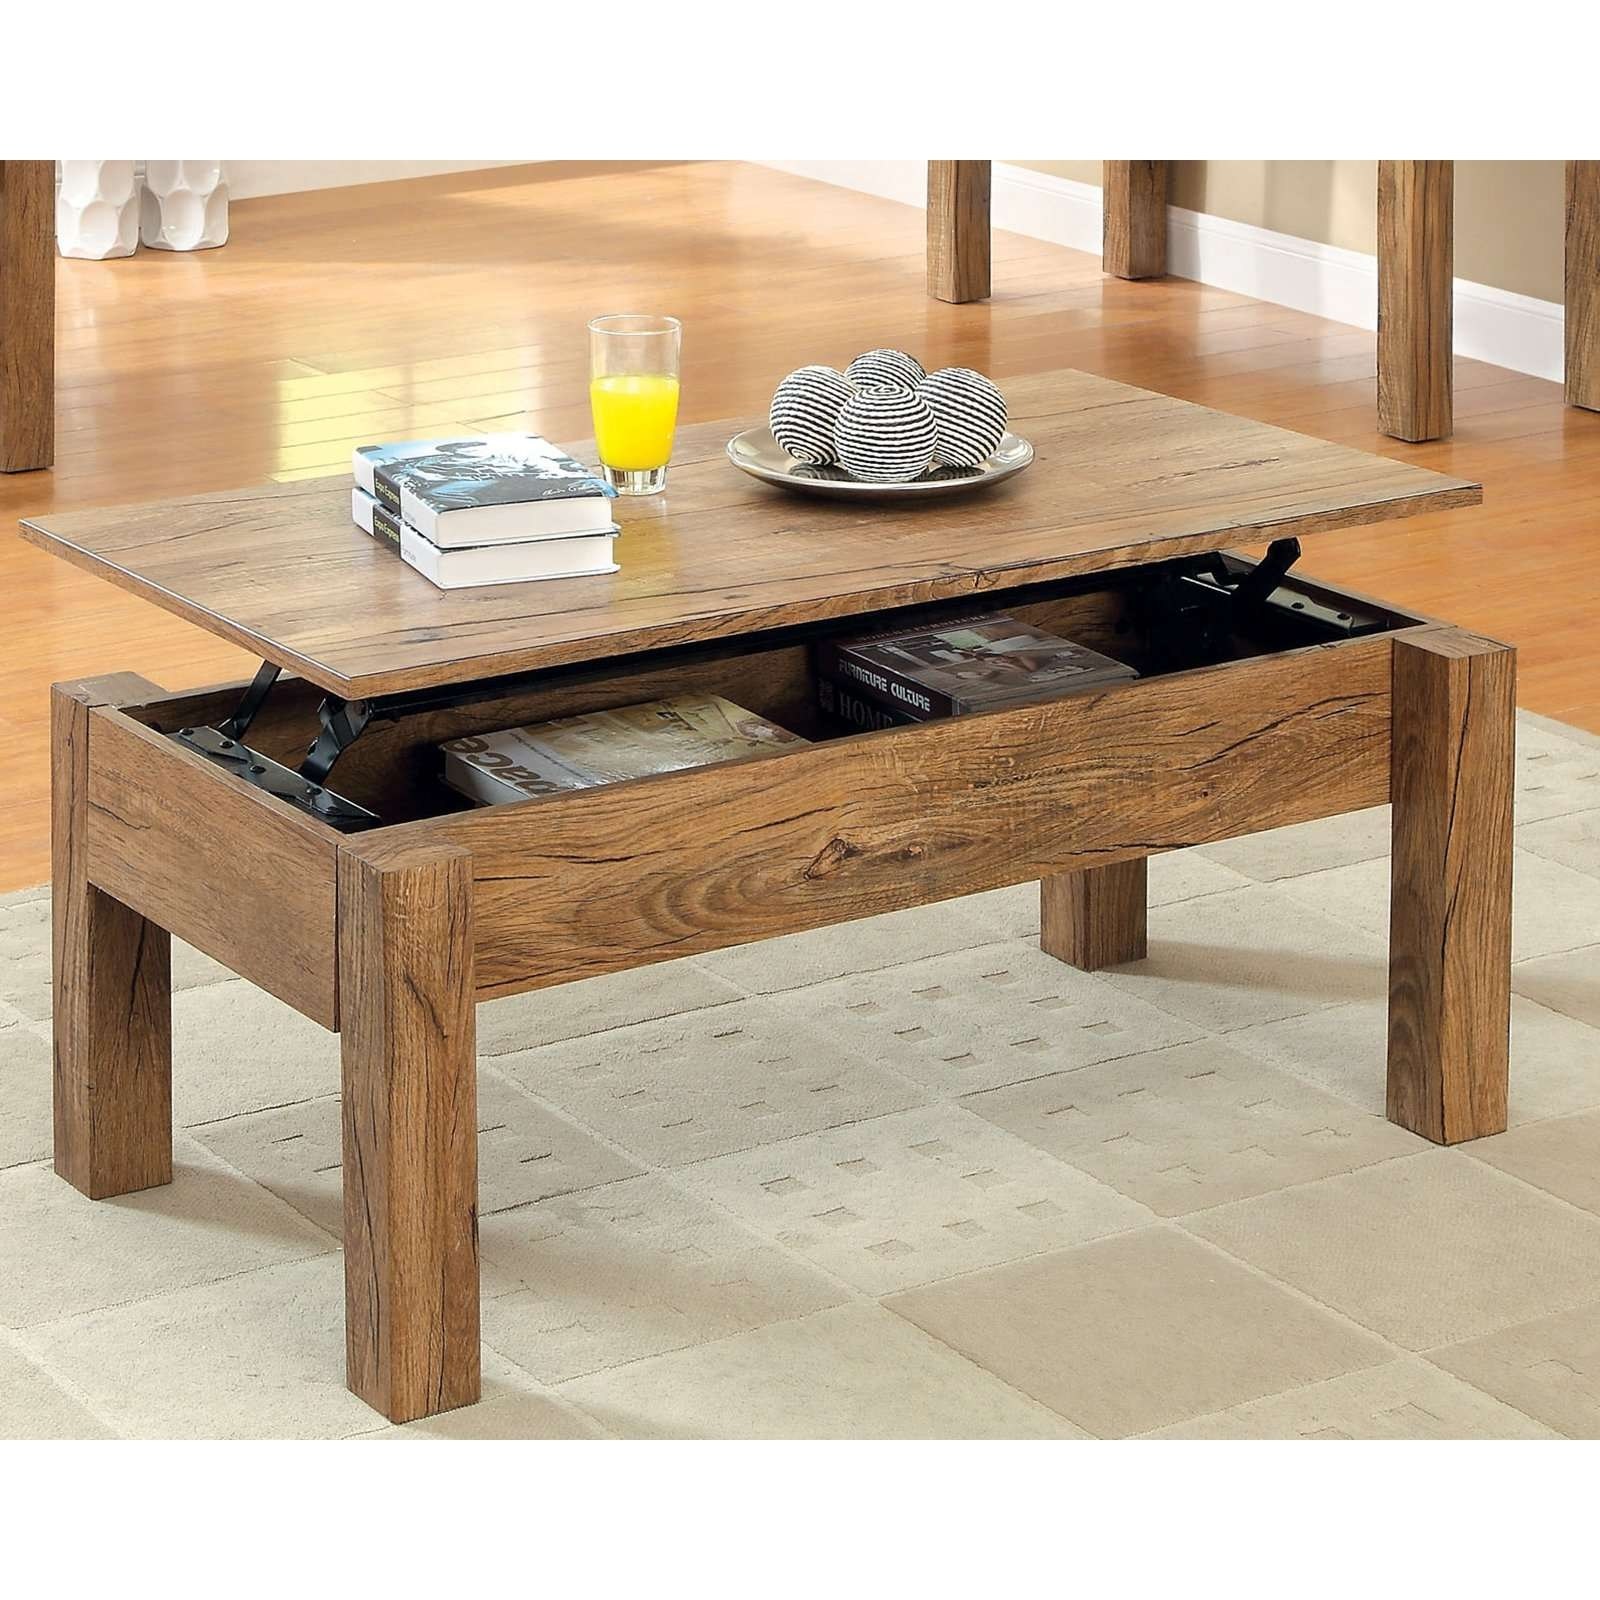 Coffee Tables : Simple Walnut Coffee Table Lift Top With Stools With Regard To 2018 Rising Coffee Tables (View 5 of 20)